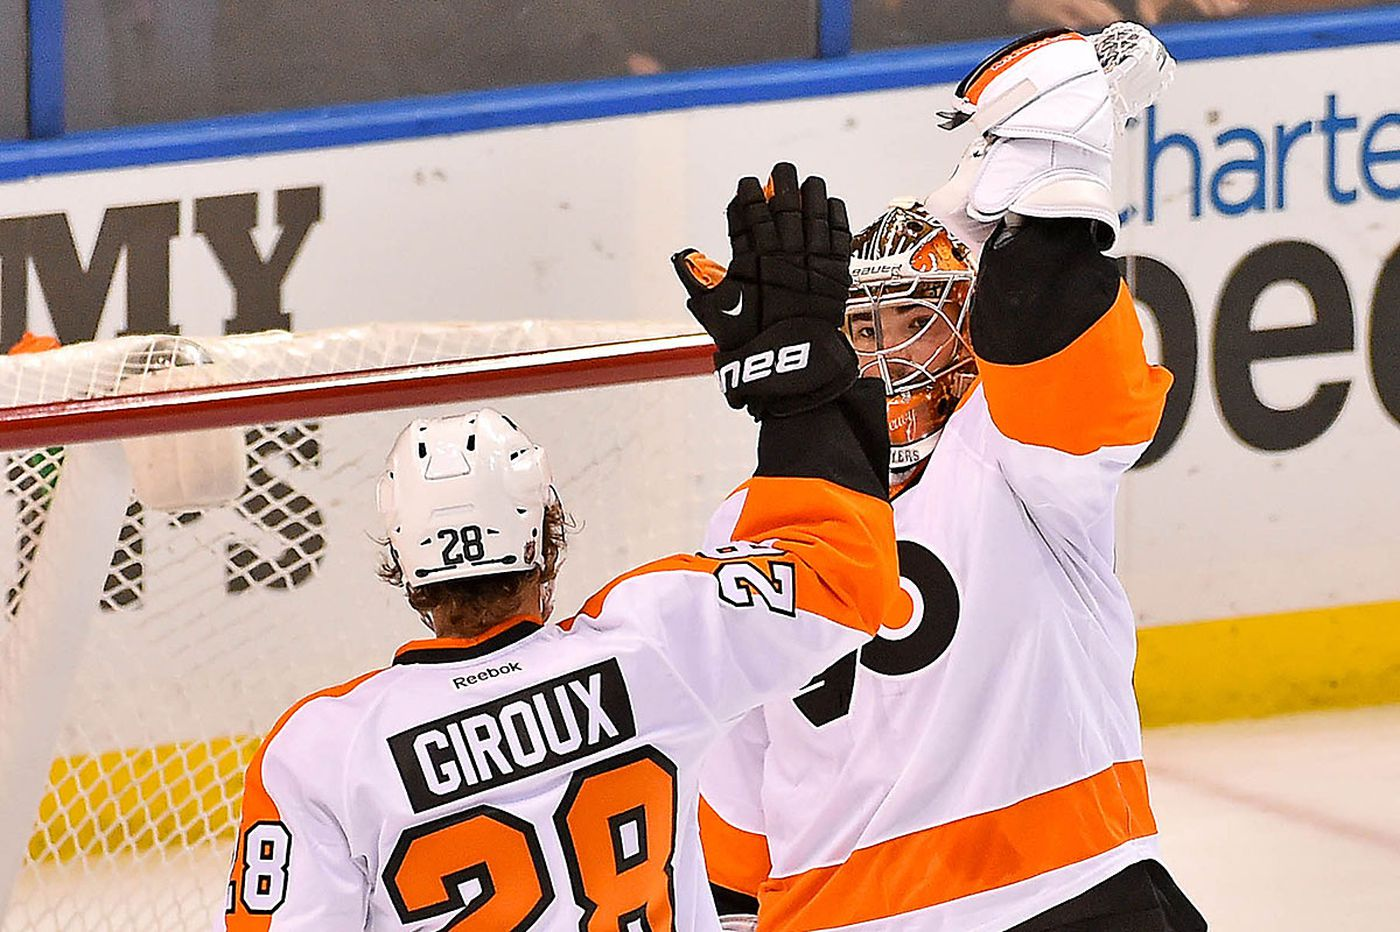 Flyers defeat the Blues in St. Louis